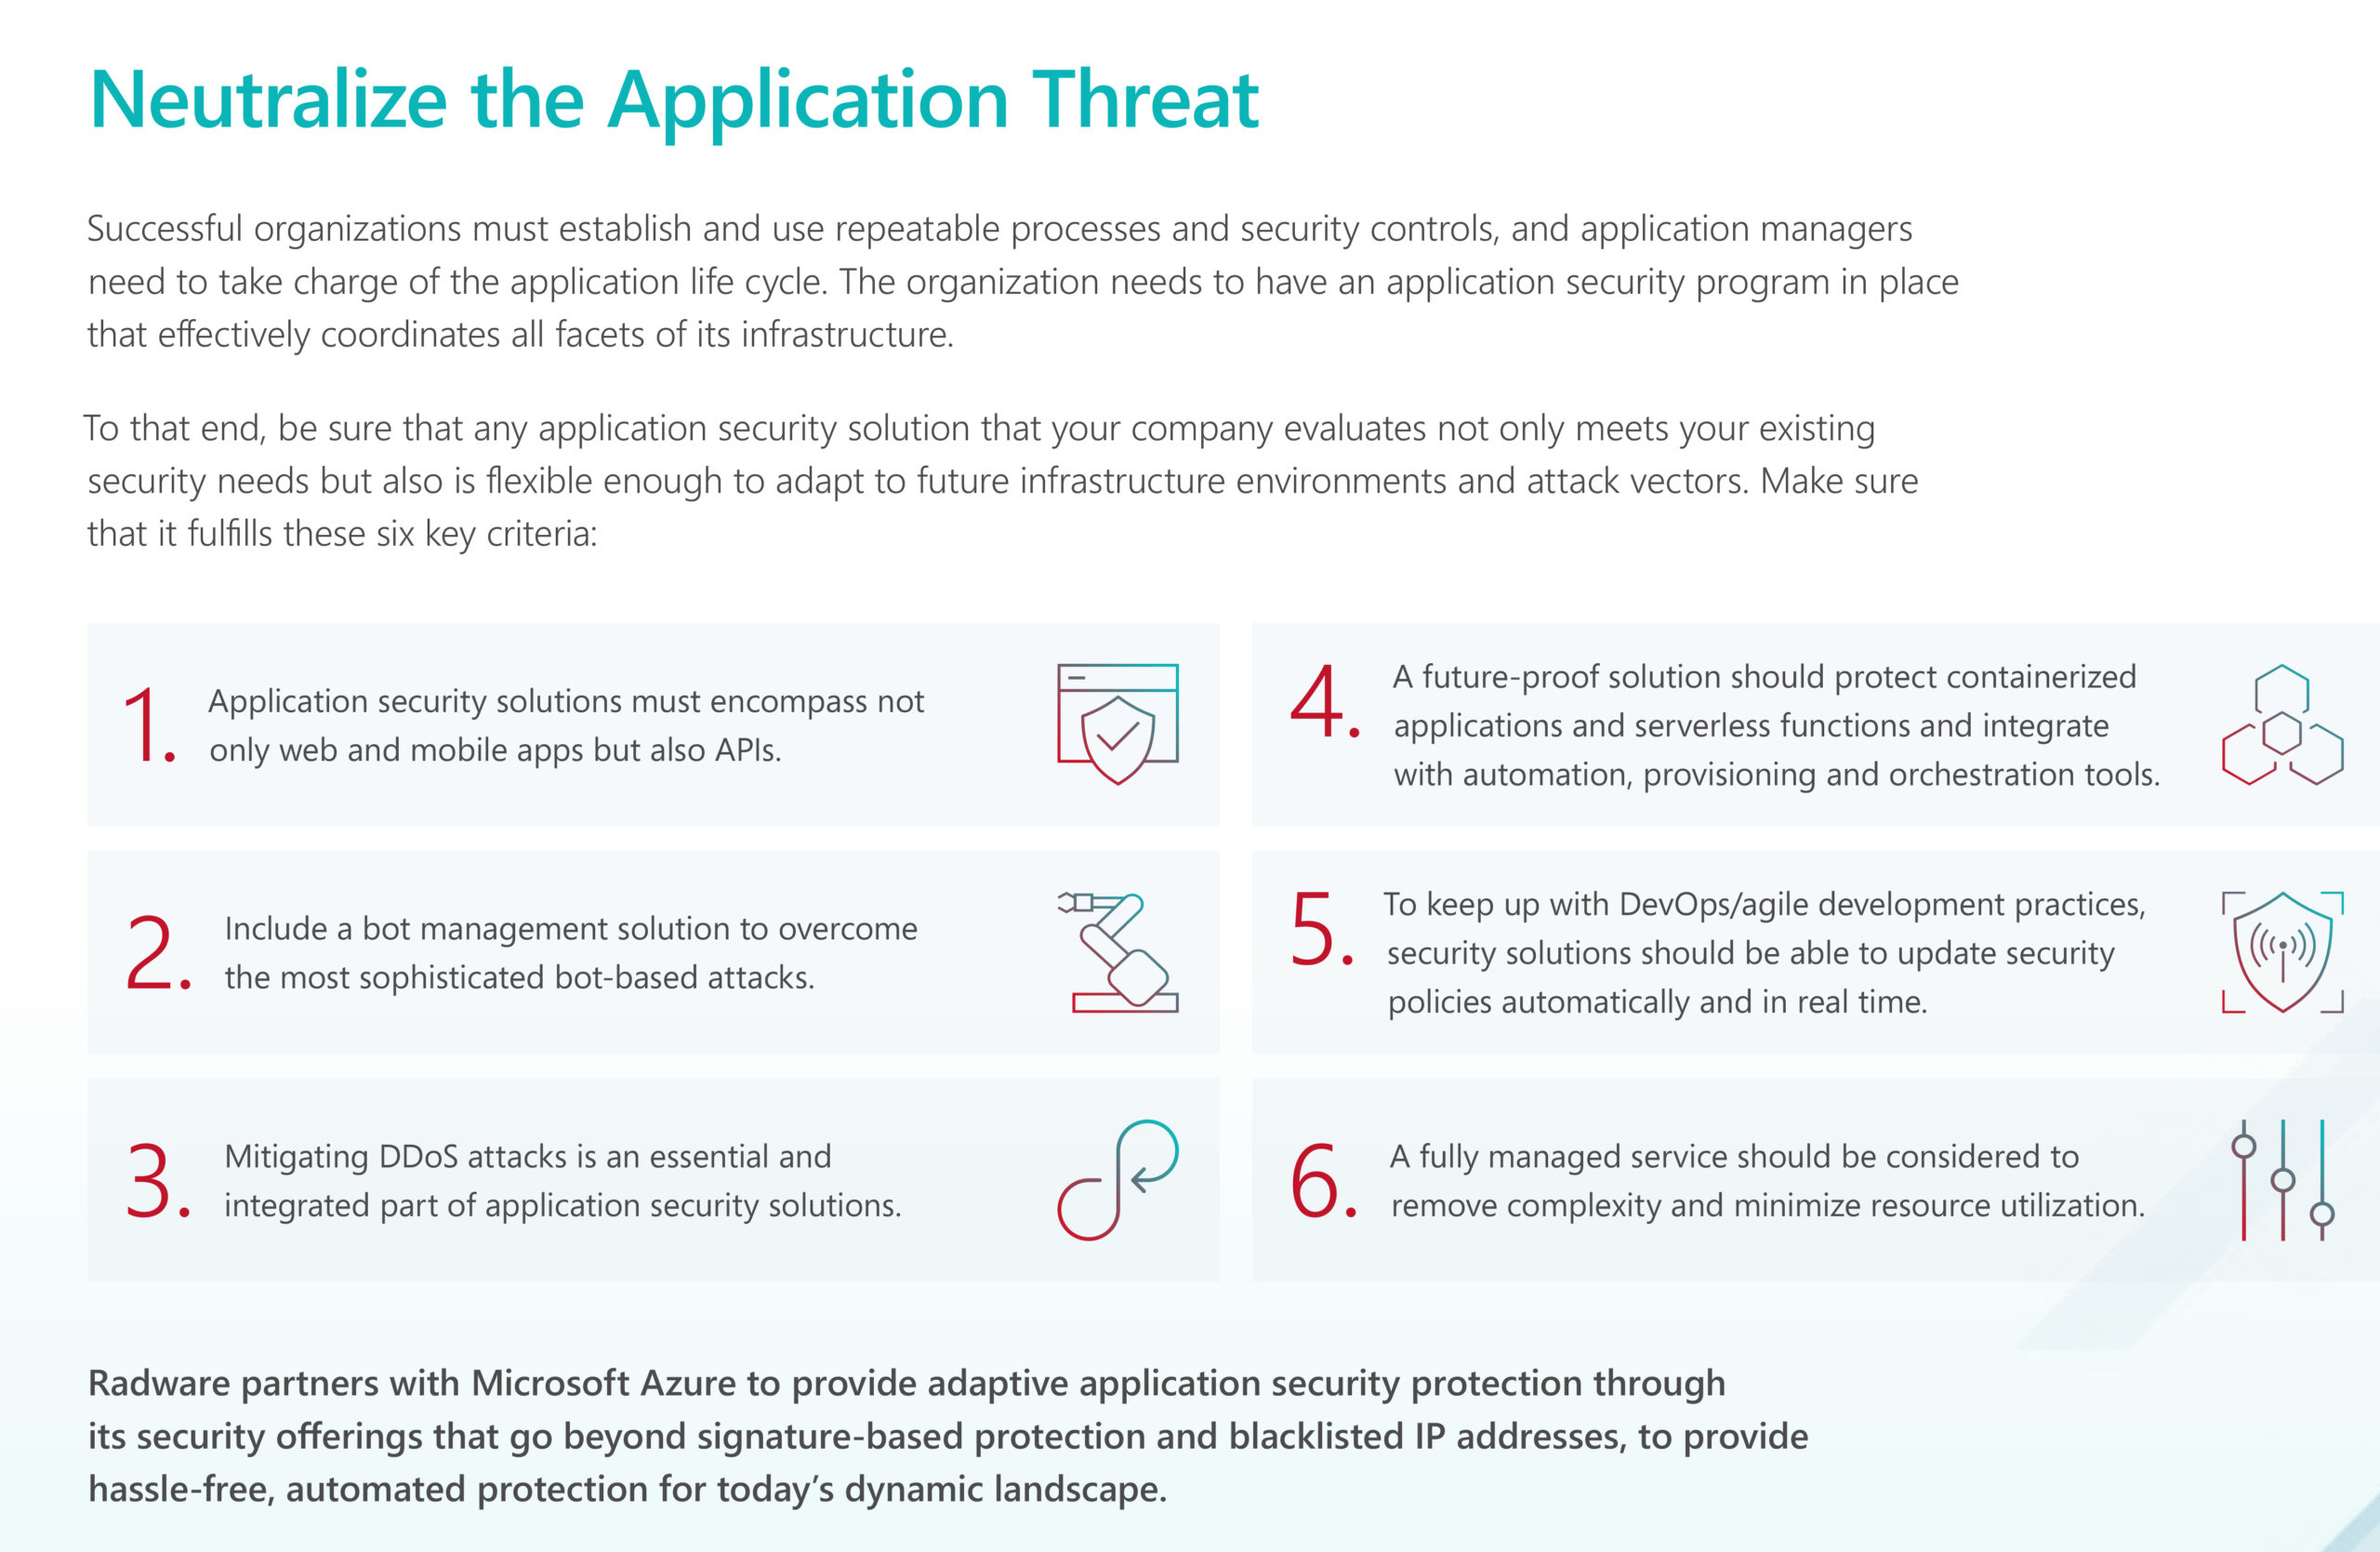 Details on security solutions offered by Radware Security for Azure